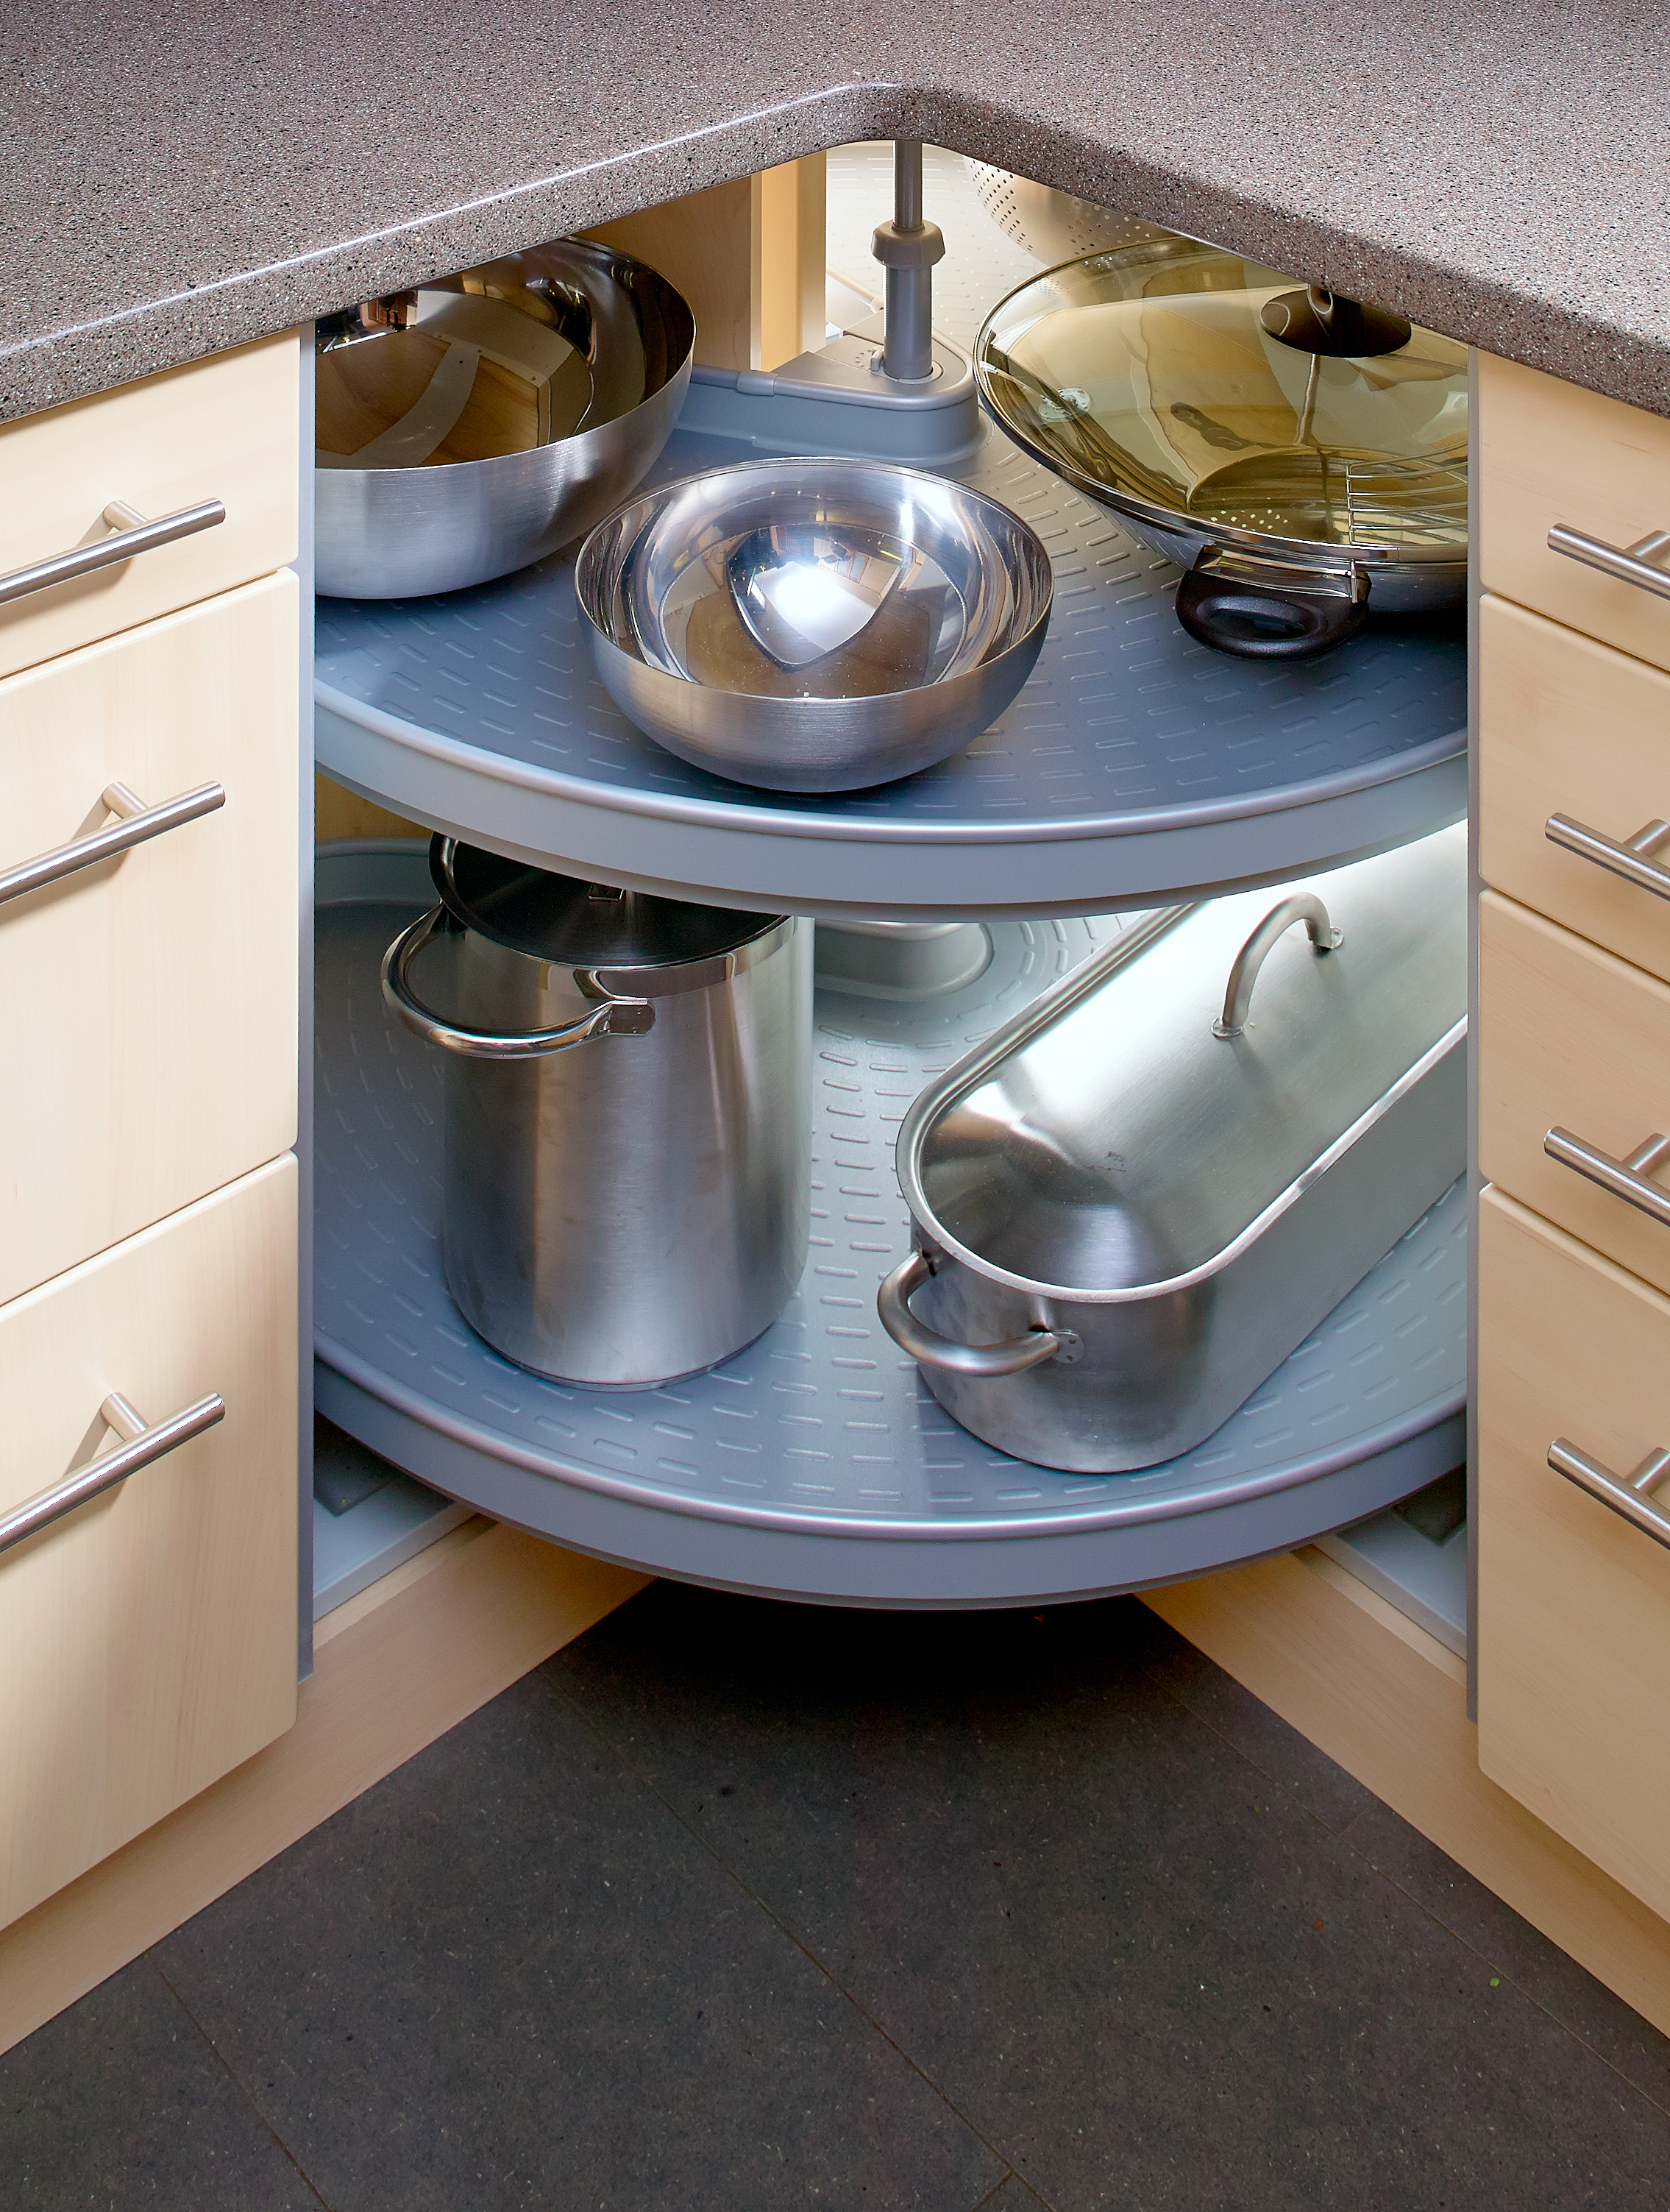 Store your pots and pans in corner cupboards